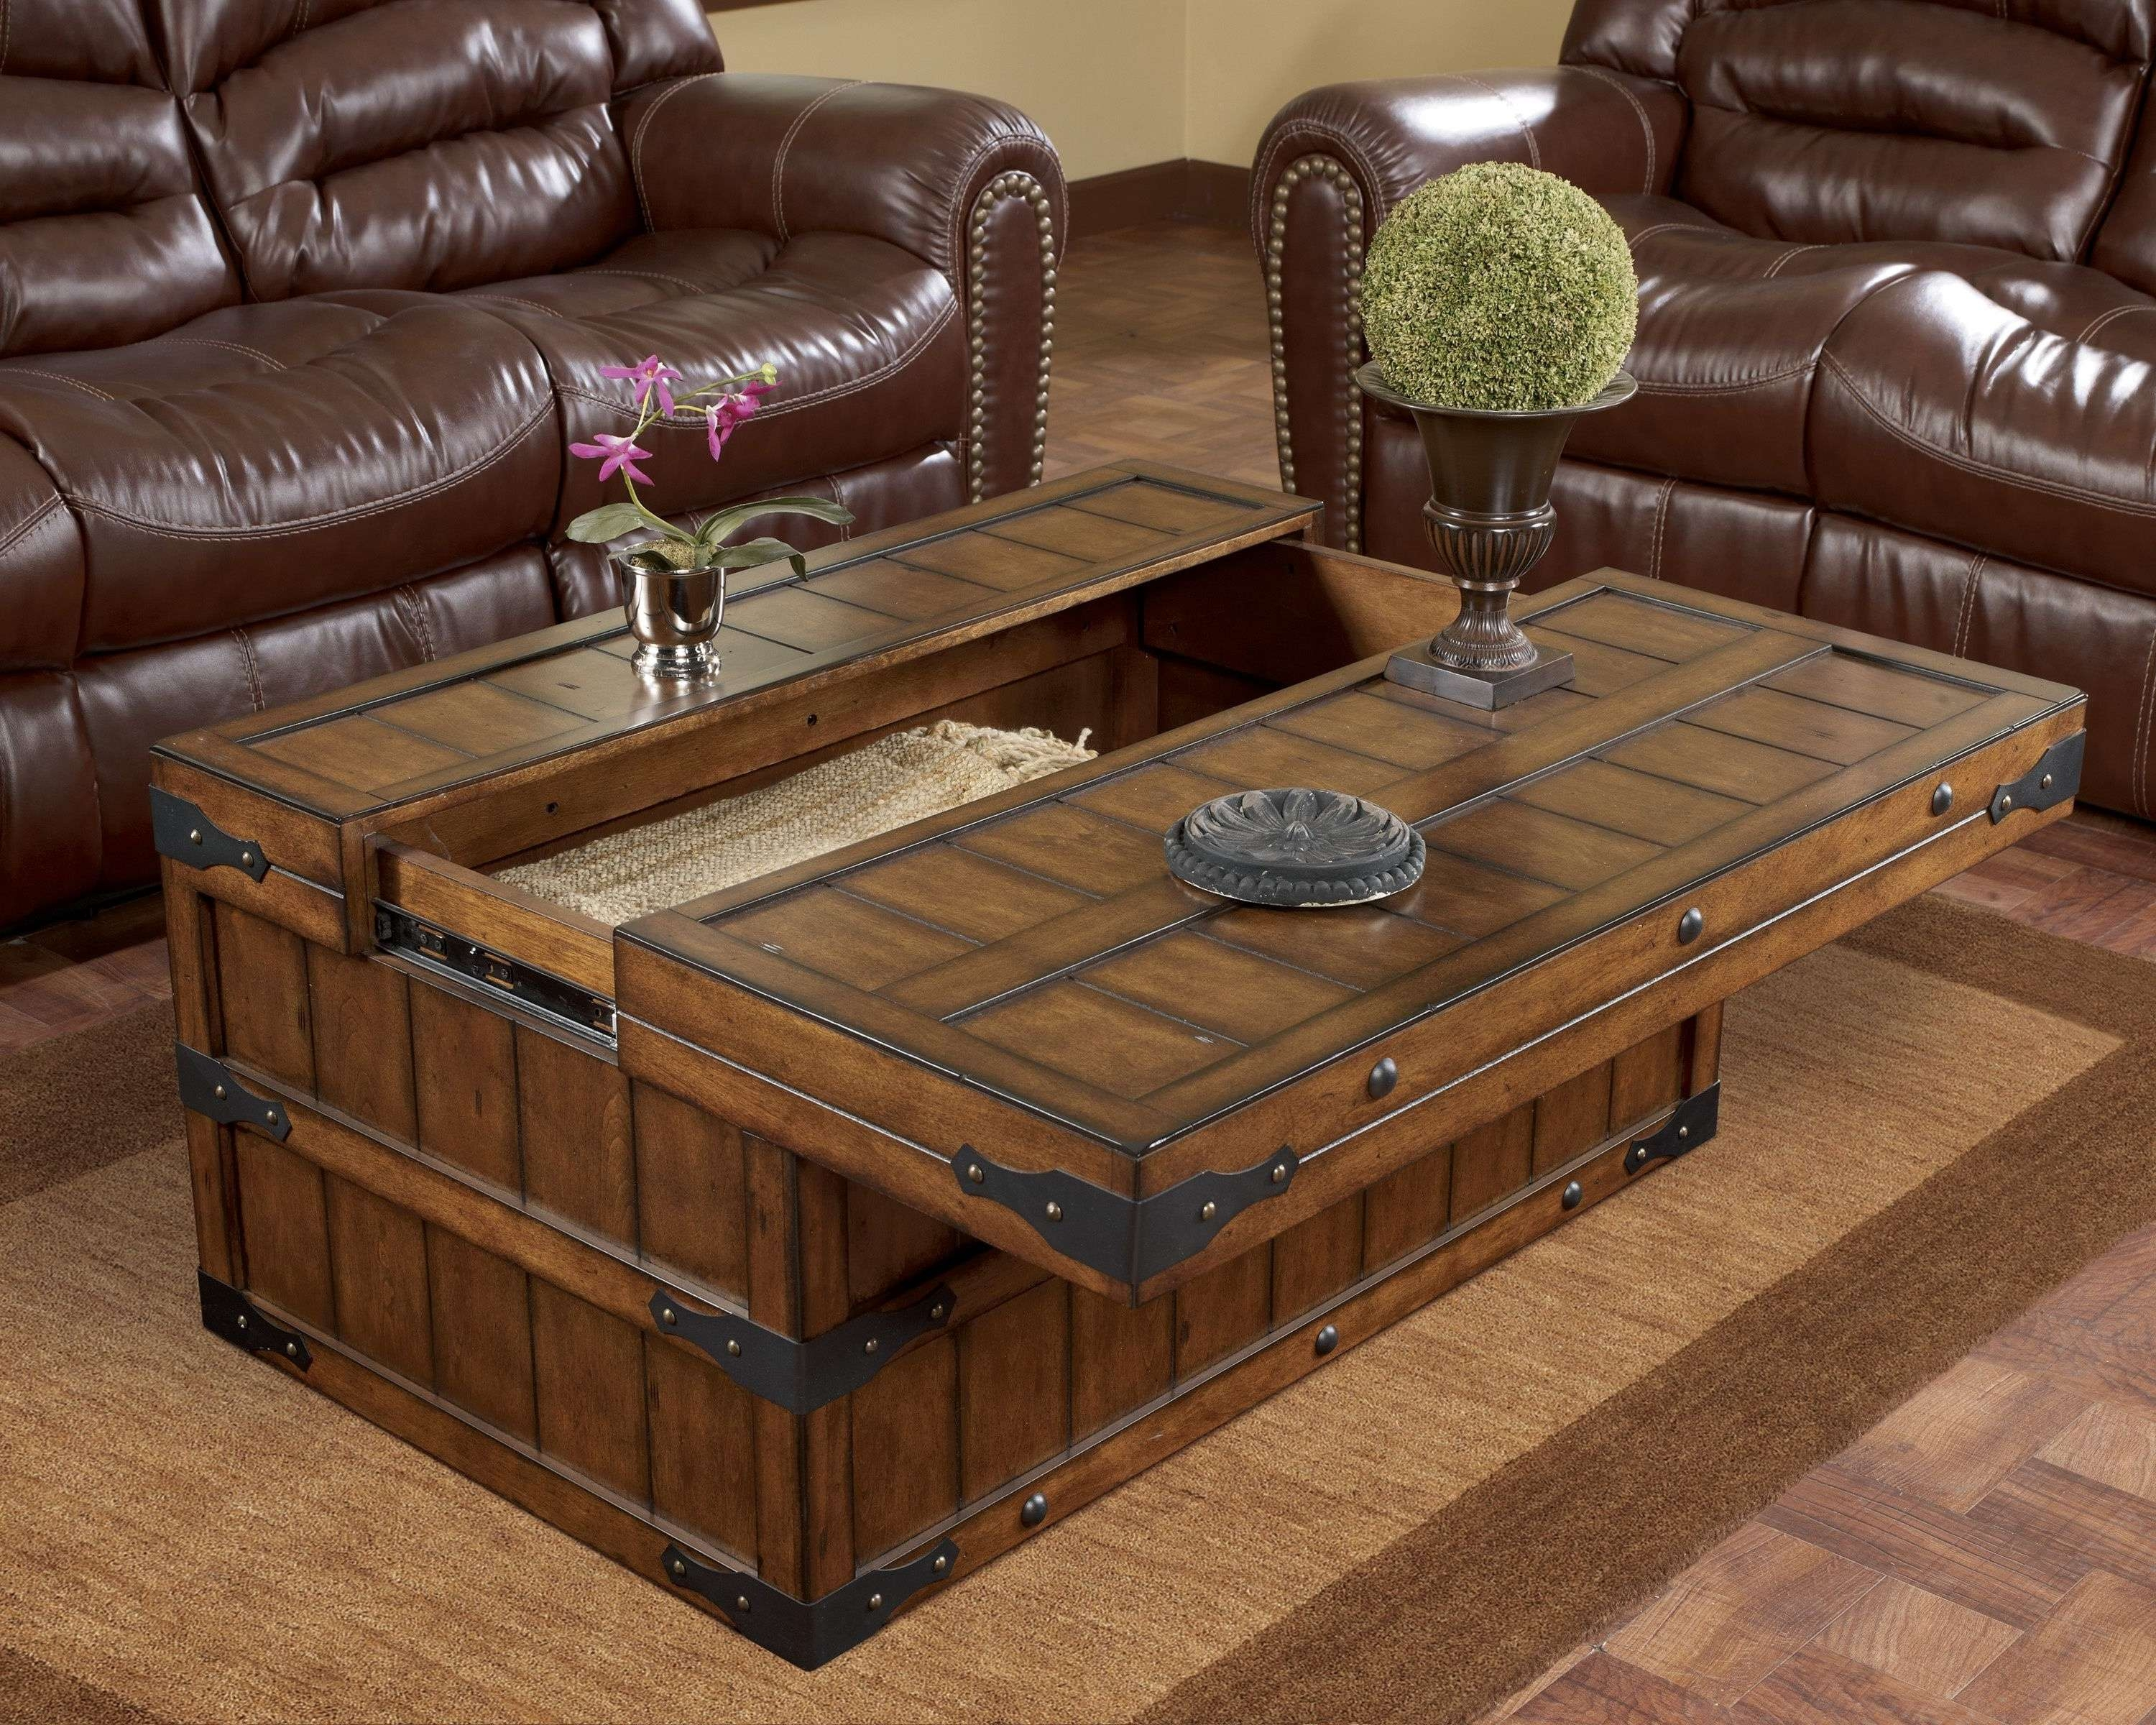 Most Popular Large Square Coffee Table With Storage Pertaining To Coffee Table : Large Square Coffee Table With Storage Barnwood Diy (View 7 of 20)